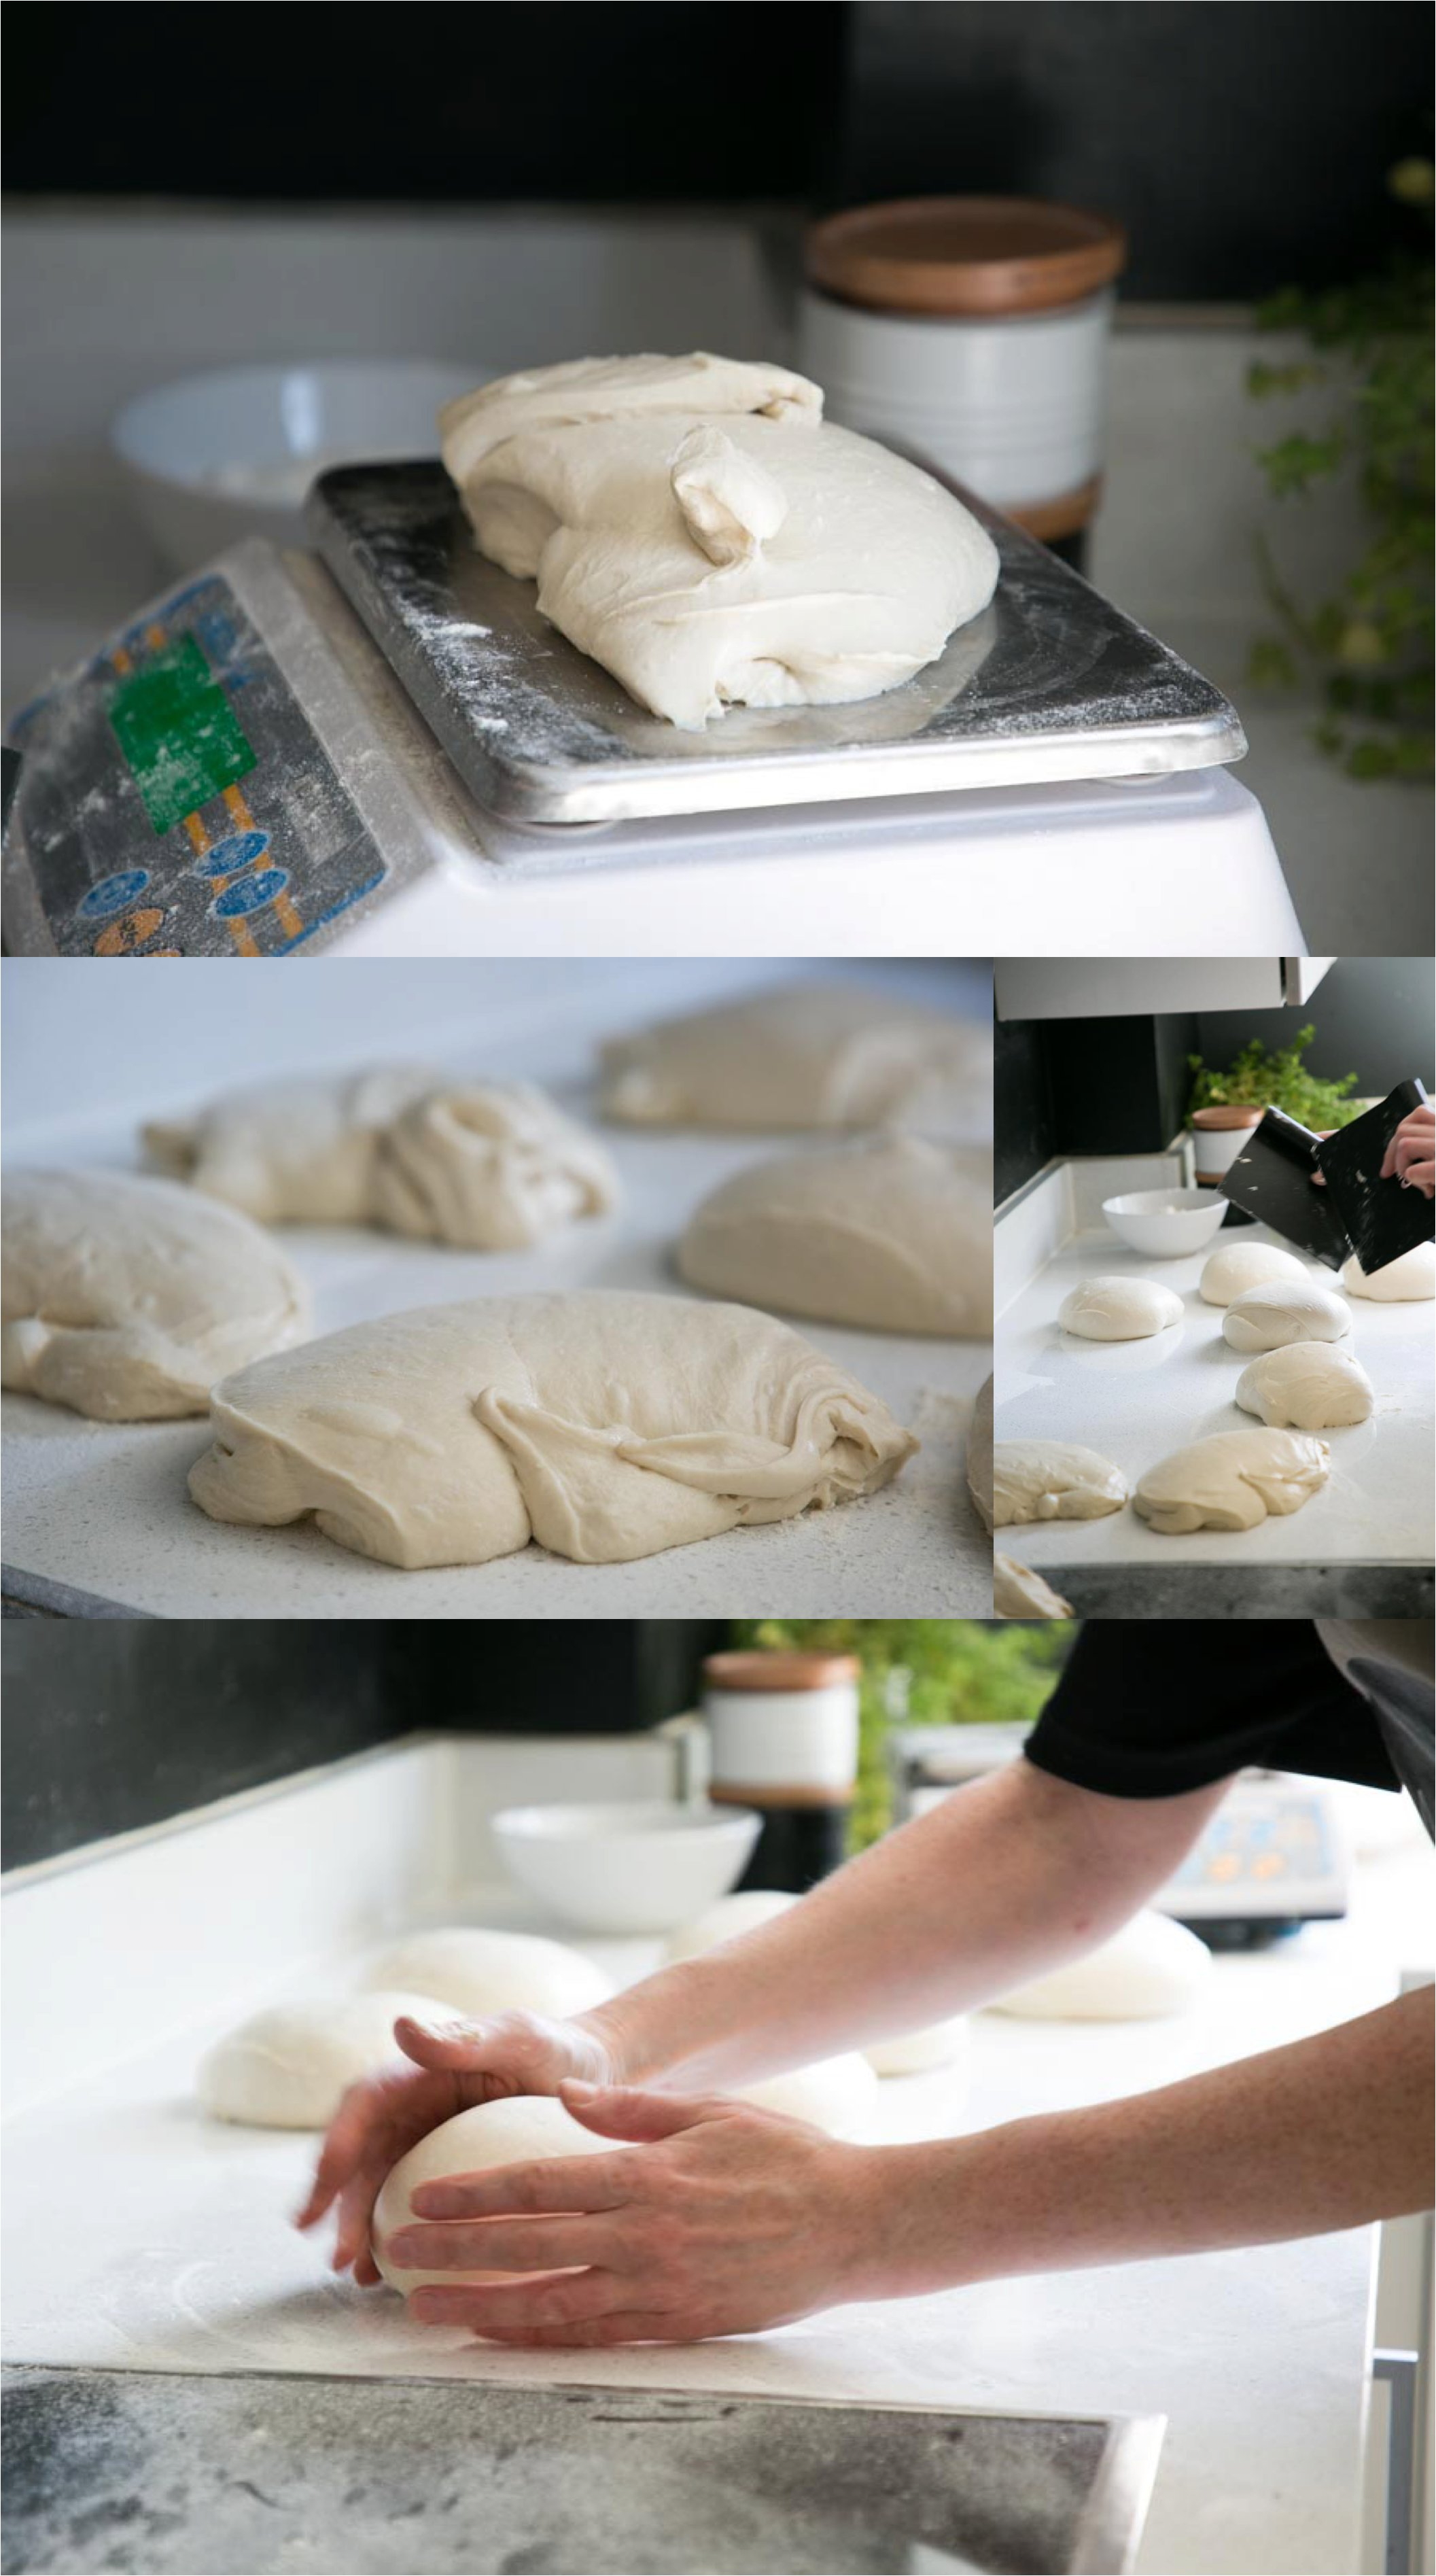 break baking and dough at bakers kitchen, lifestyle photography